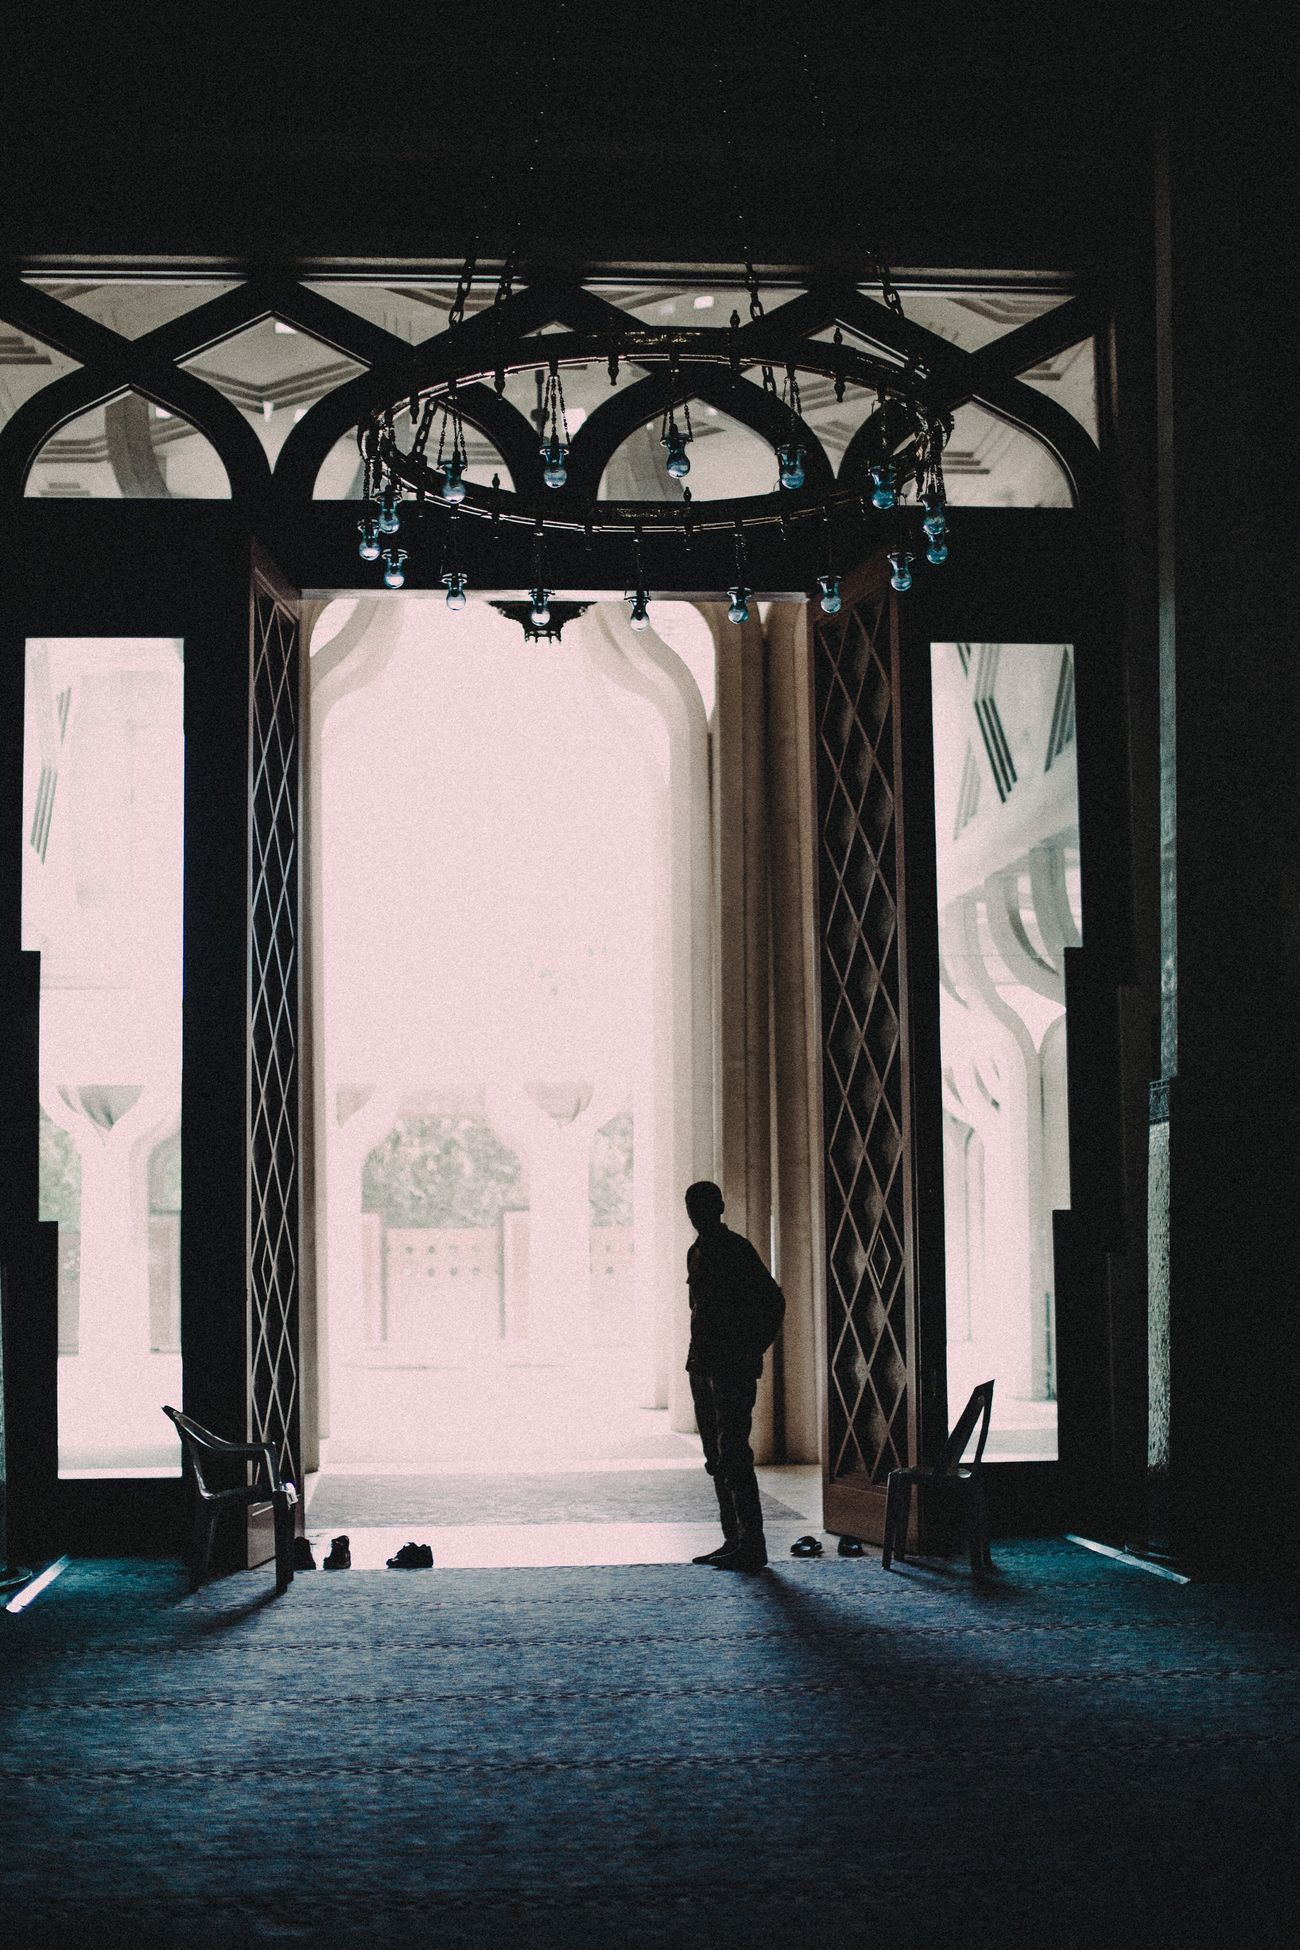 Canon Mosque Indoors  Full Length One Person Architecture Islamic Architecture Islamic Religion Islam EyeEm Best Shots The Week Of Eyeem The Week On EyeEem Photooftheday Indoors  Multi Colored Built Structure Arch Design EyeEm Meditation Spirituality Waiting People Photography